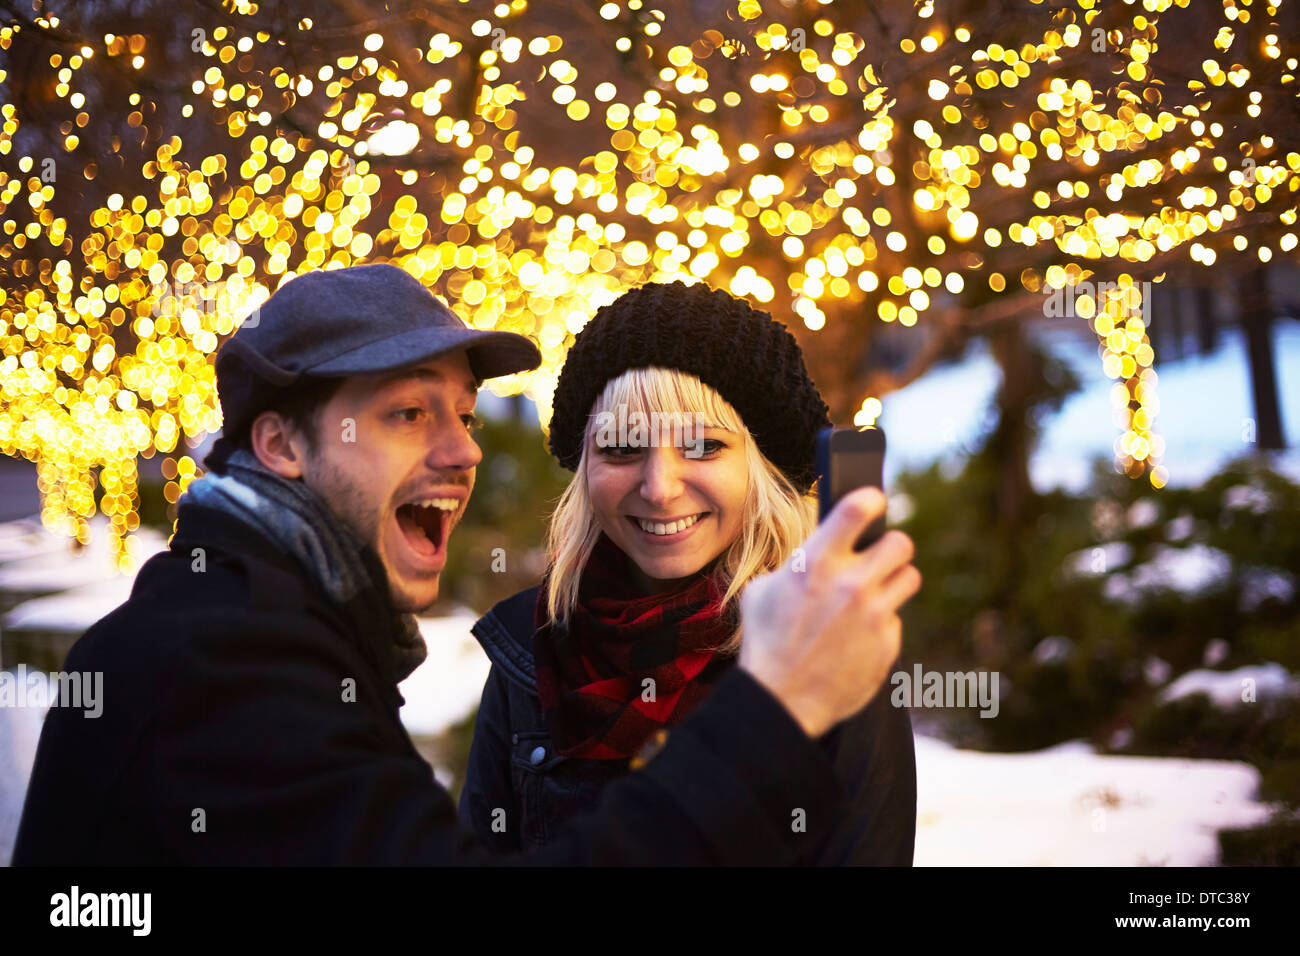 Young couple taking self portrait with outdoor xmas lights - Stock Image